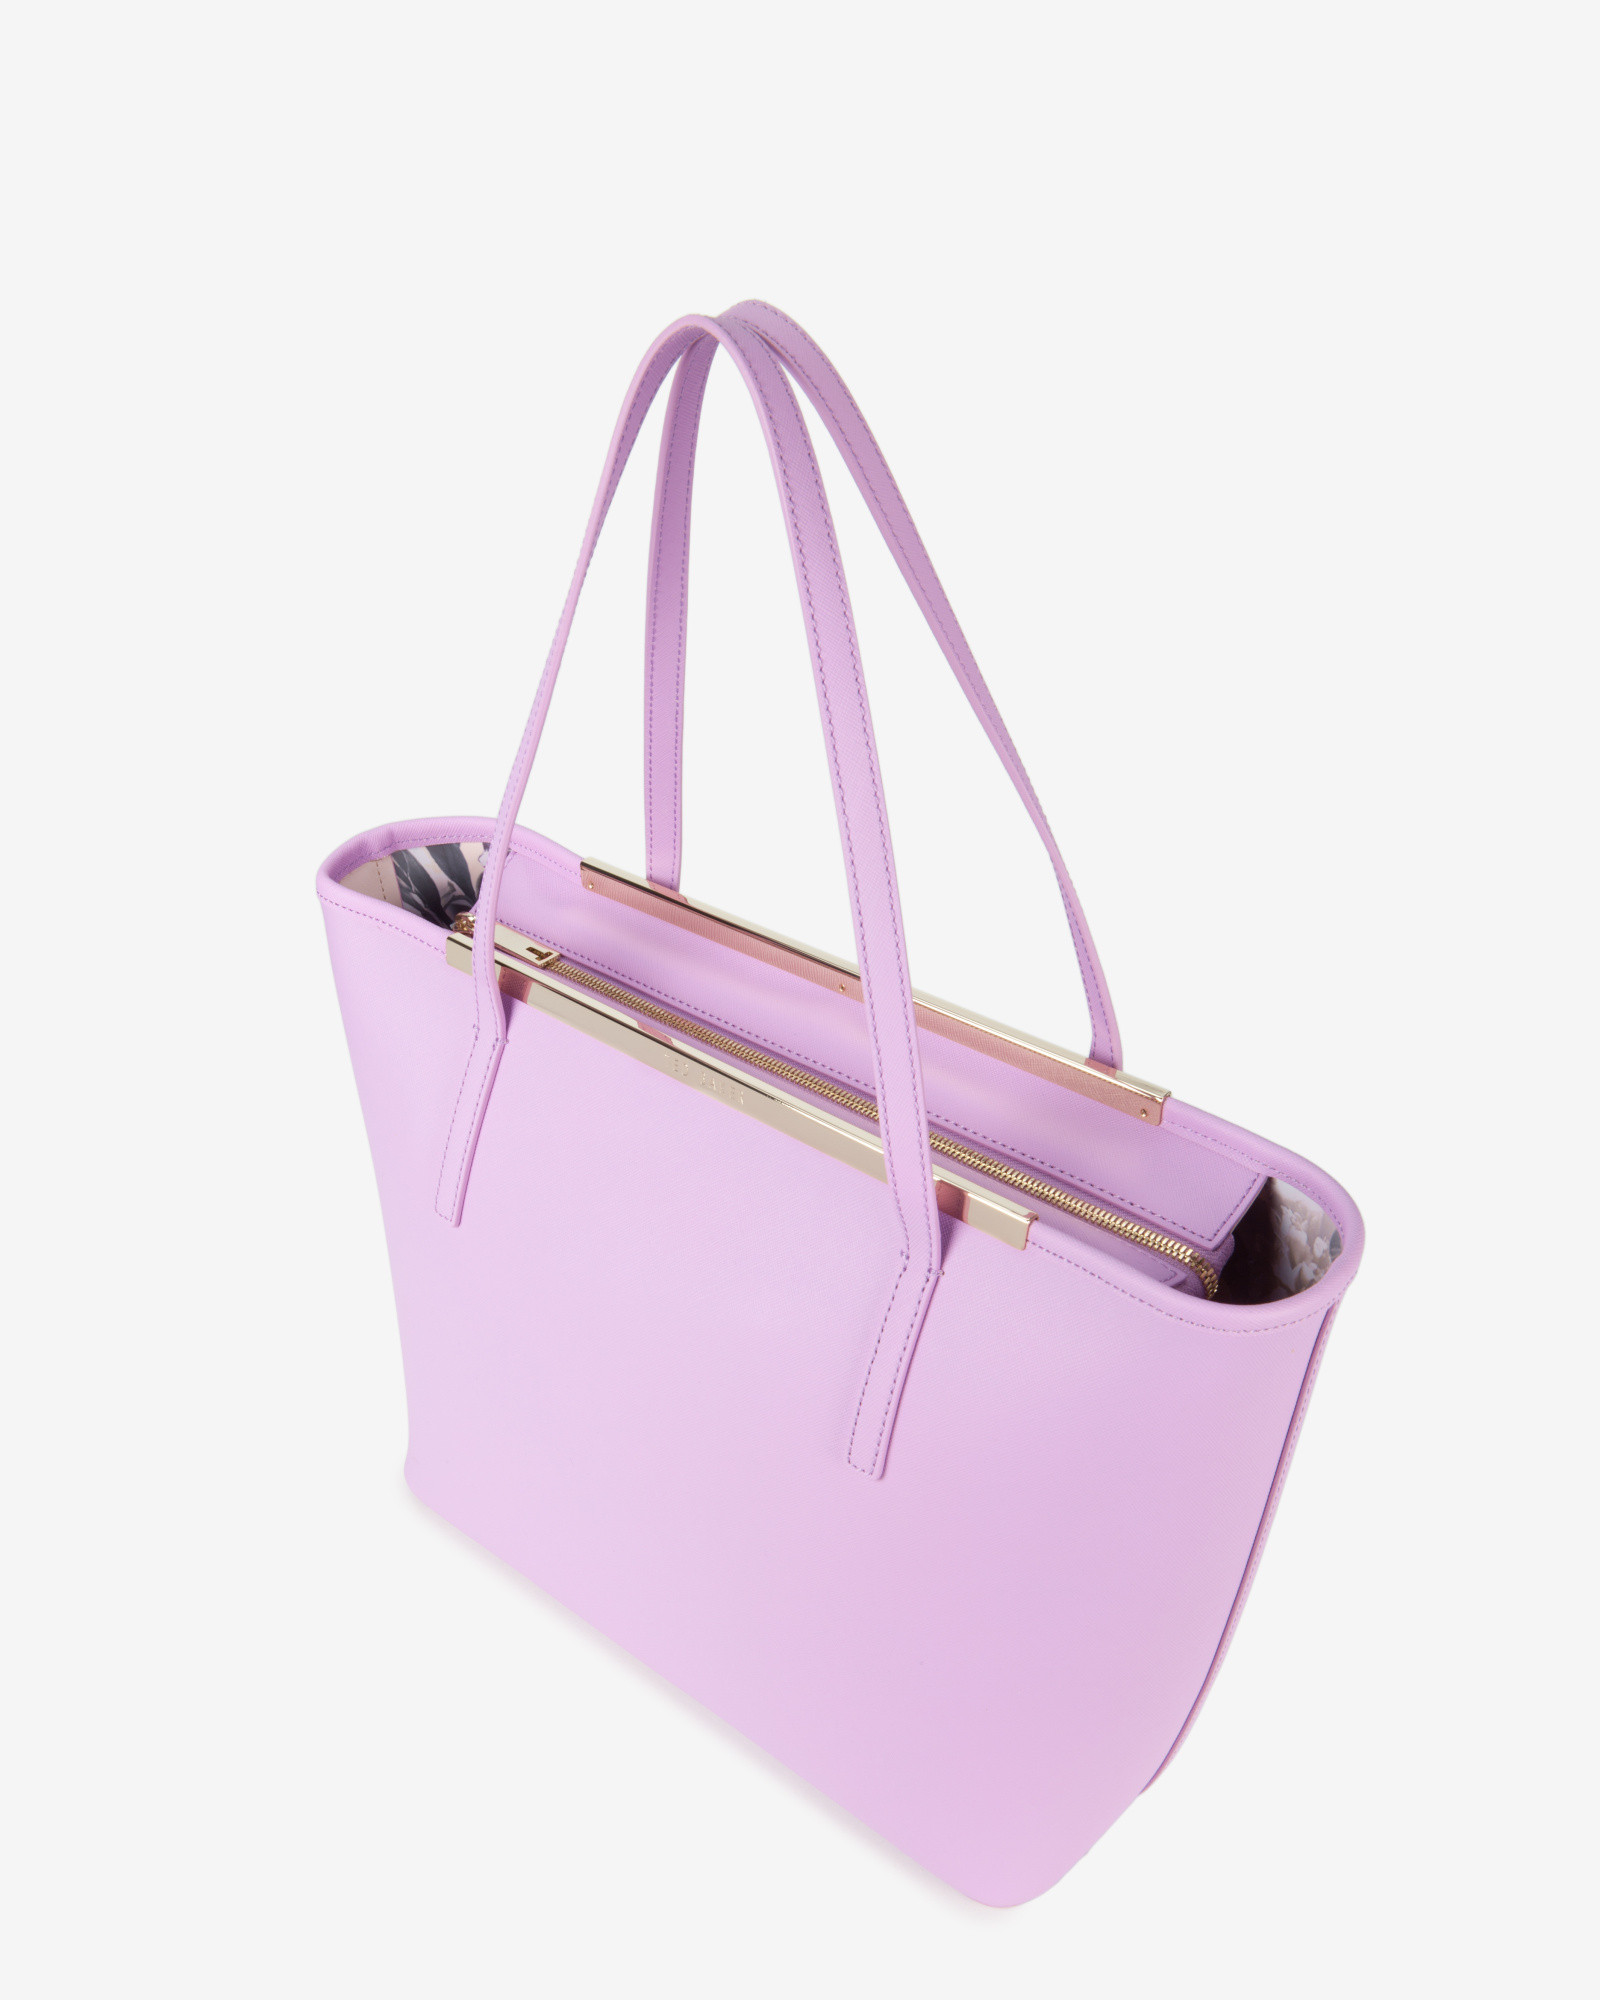 844bc5f74605 Lyst - Ted Baker Large Crosshatch Leather Shopper Bag in Purple